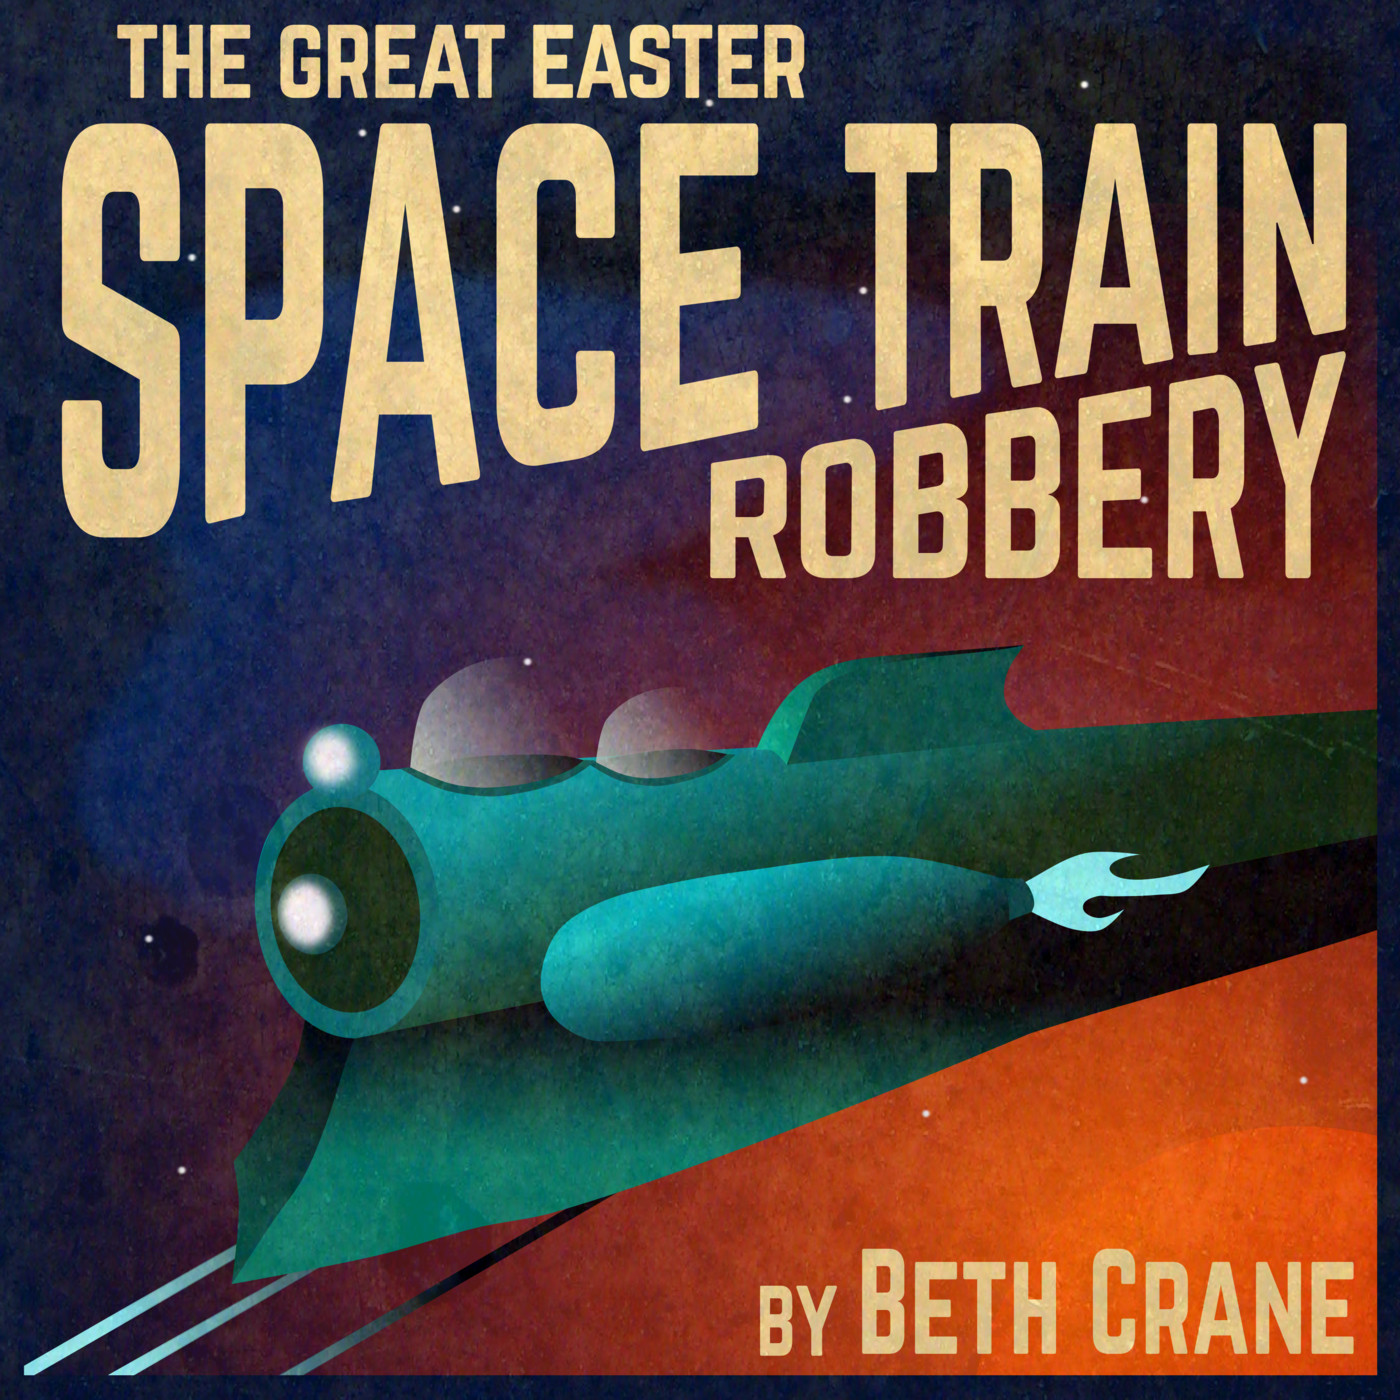 [Trailer] The Great Easter Space Train Robbery